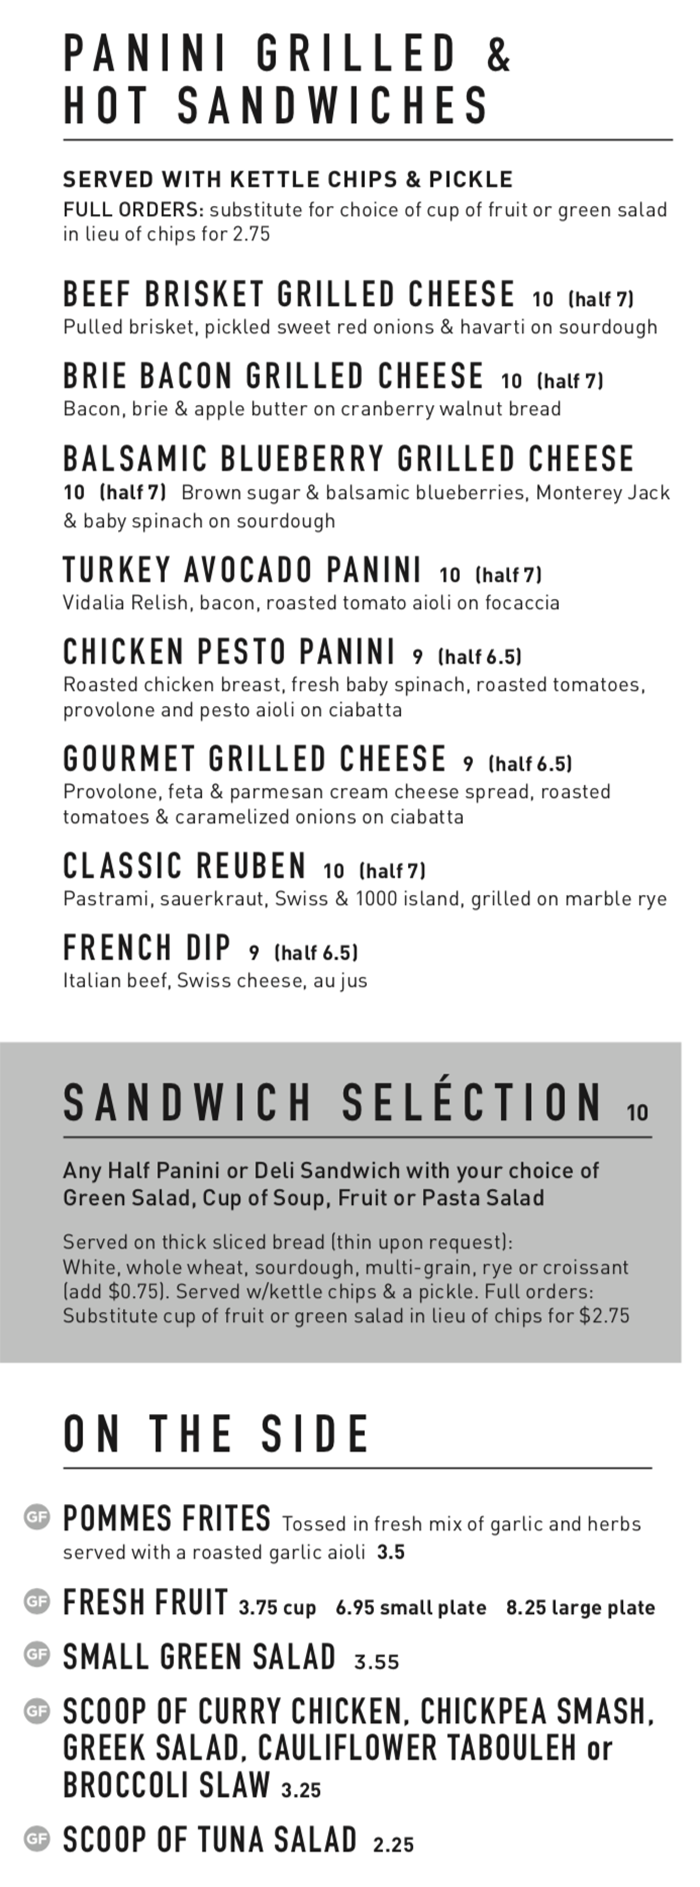 Gourmandise lunch menu - panini, sandwiches, sides